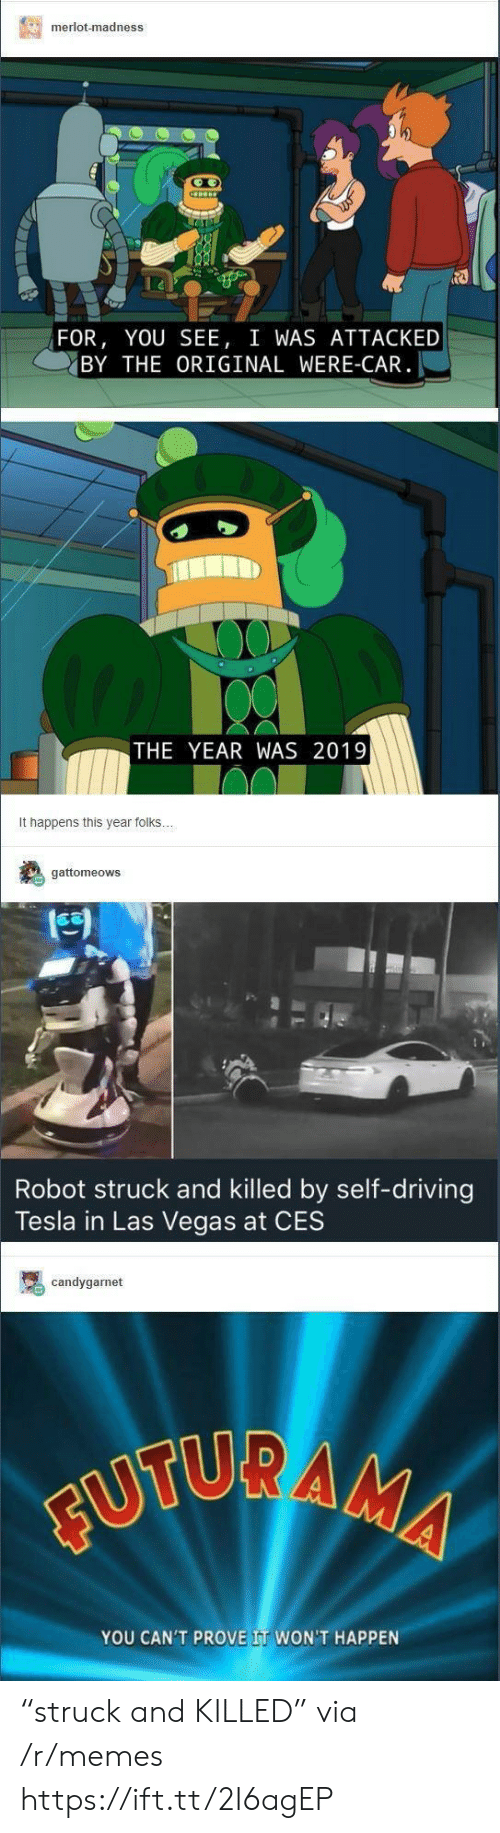 """ces: merlot-madness  FOR, YOU SEE, I WAS ATTACKED  BY THE ORIGINAL WERE-CAR  THE YEAR WAS 2019  It happens this year folks  gattomeows  Robot struck and killed by self-driving  Tesla in Las Vegas at CES  candygarnet  YOU CAN'T PROVE IT WON'T HAPPEN """"struck and KILLED"""" via /r/memes https://ift.tt/2I6agEP"""